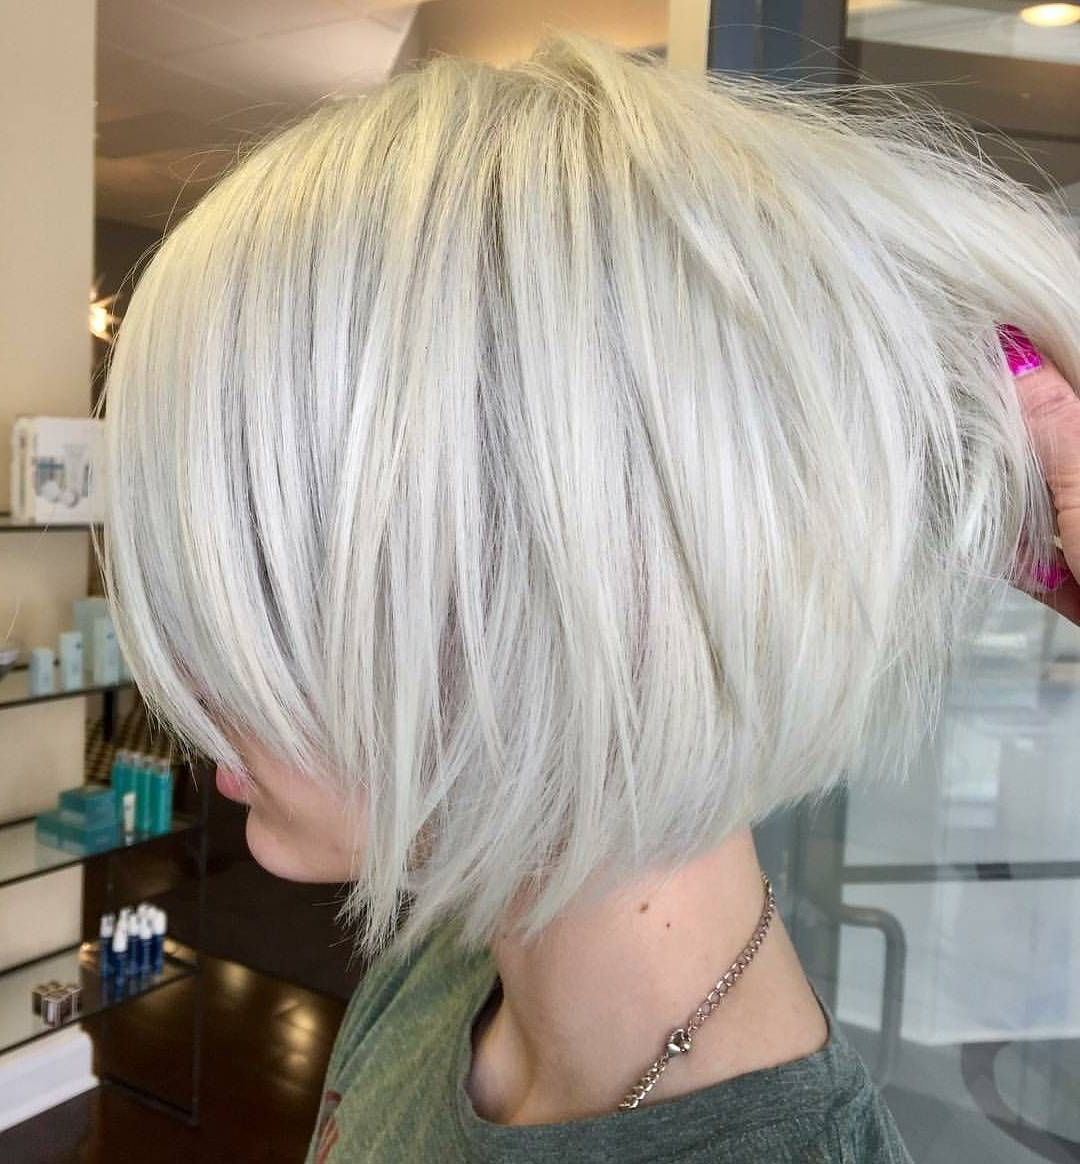 10 Layered Bob Hairstyles – Look Fab In New Blonde Shades | Hair With Gray Bob Hairstyles With Delicate Layers (View 1 of 20)